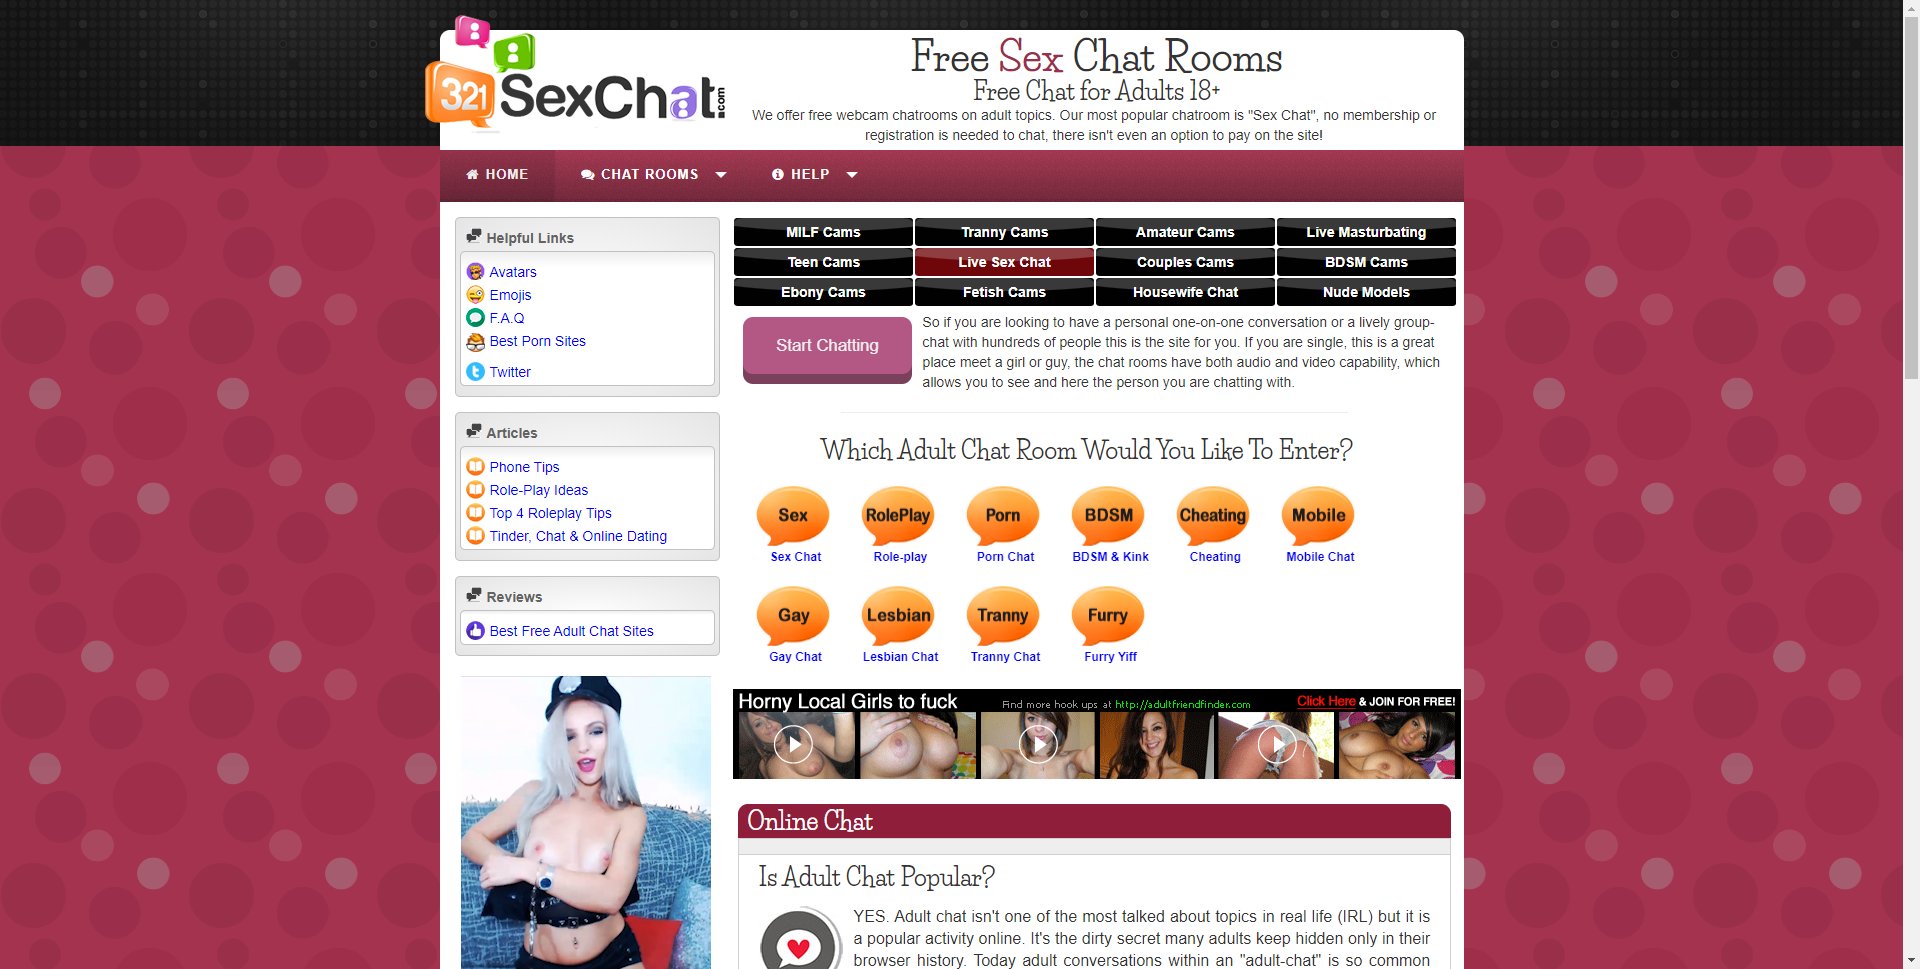 321SexChat